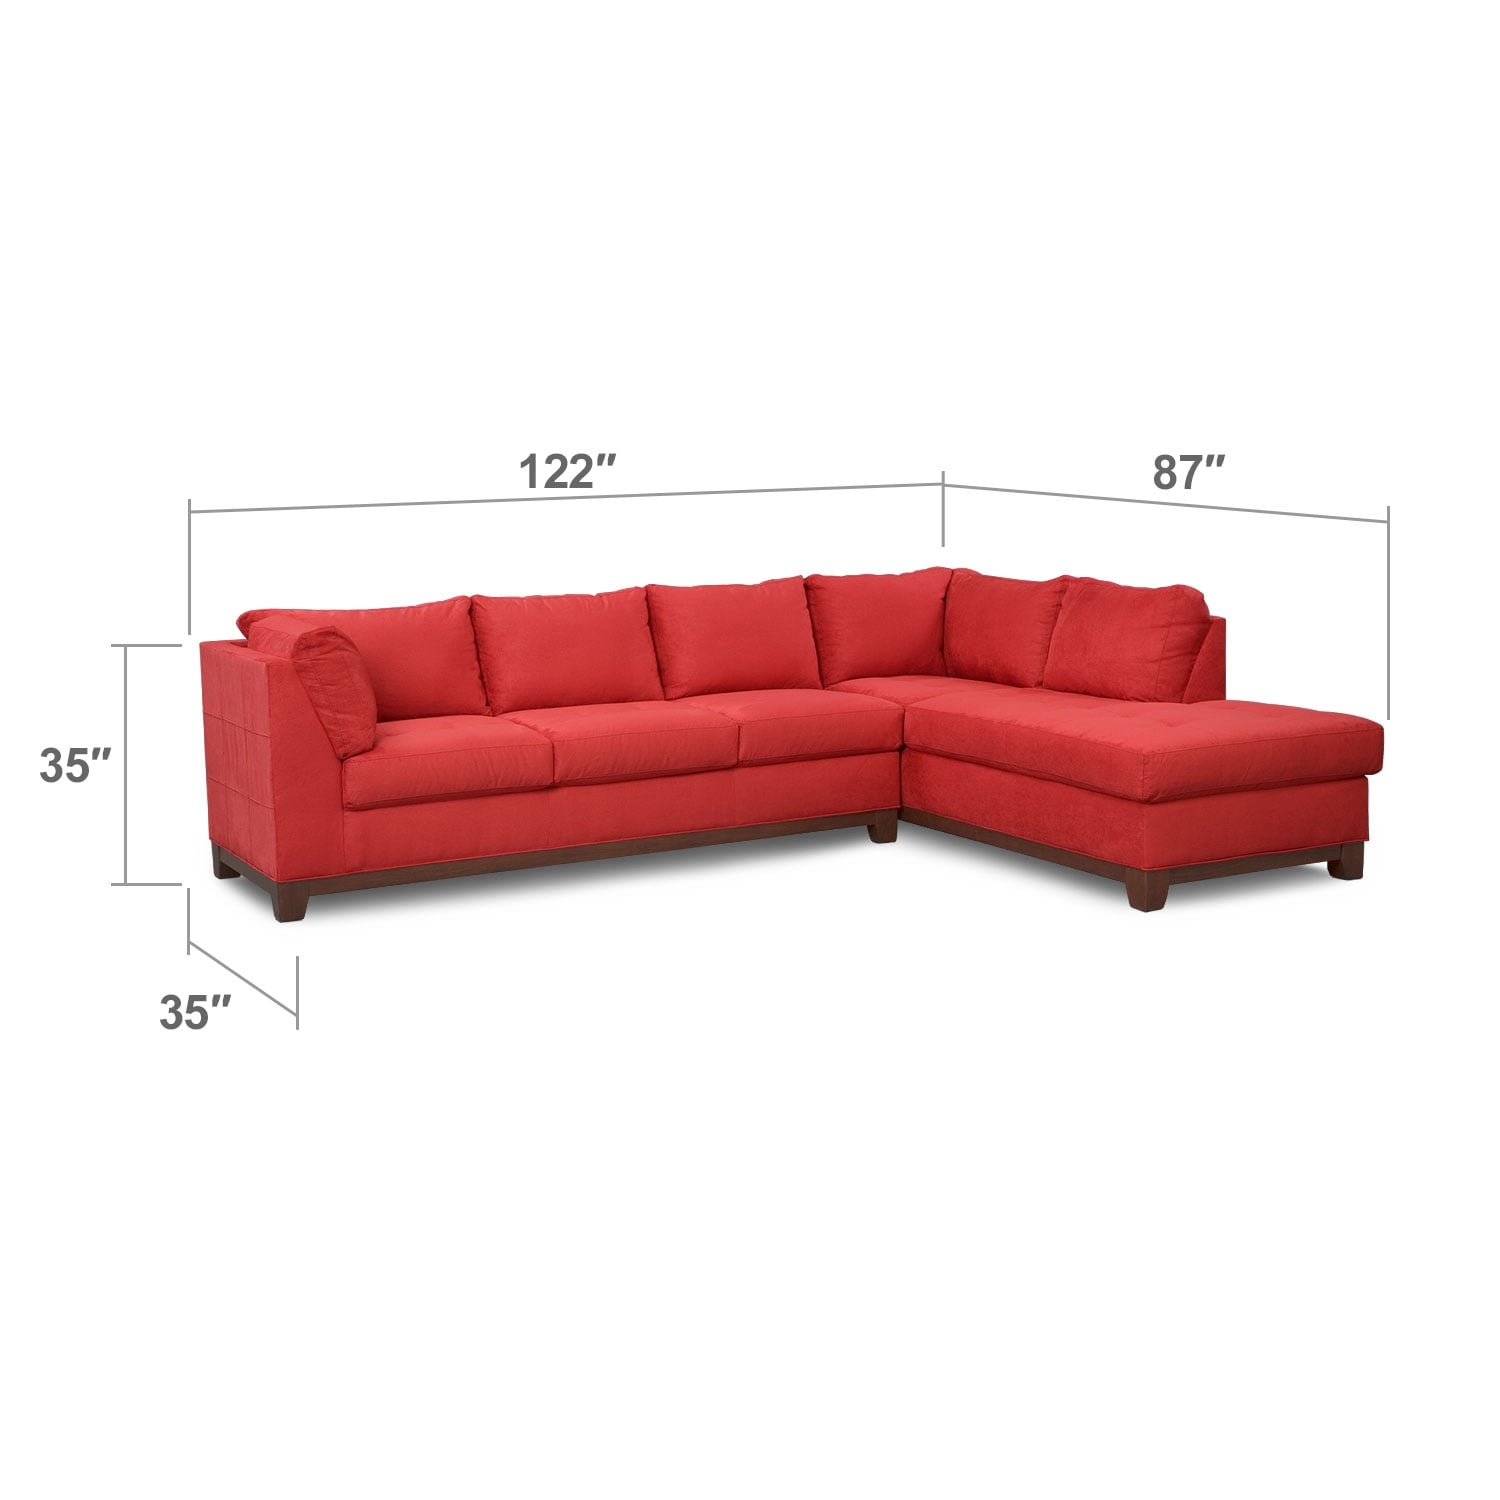 Soho 2 Piece Sectional with Right Facing Chaise Red